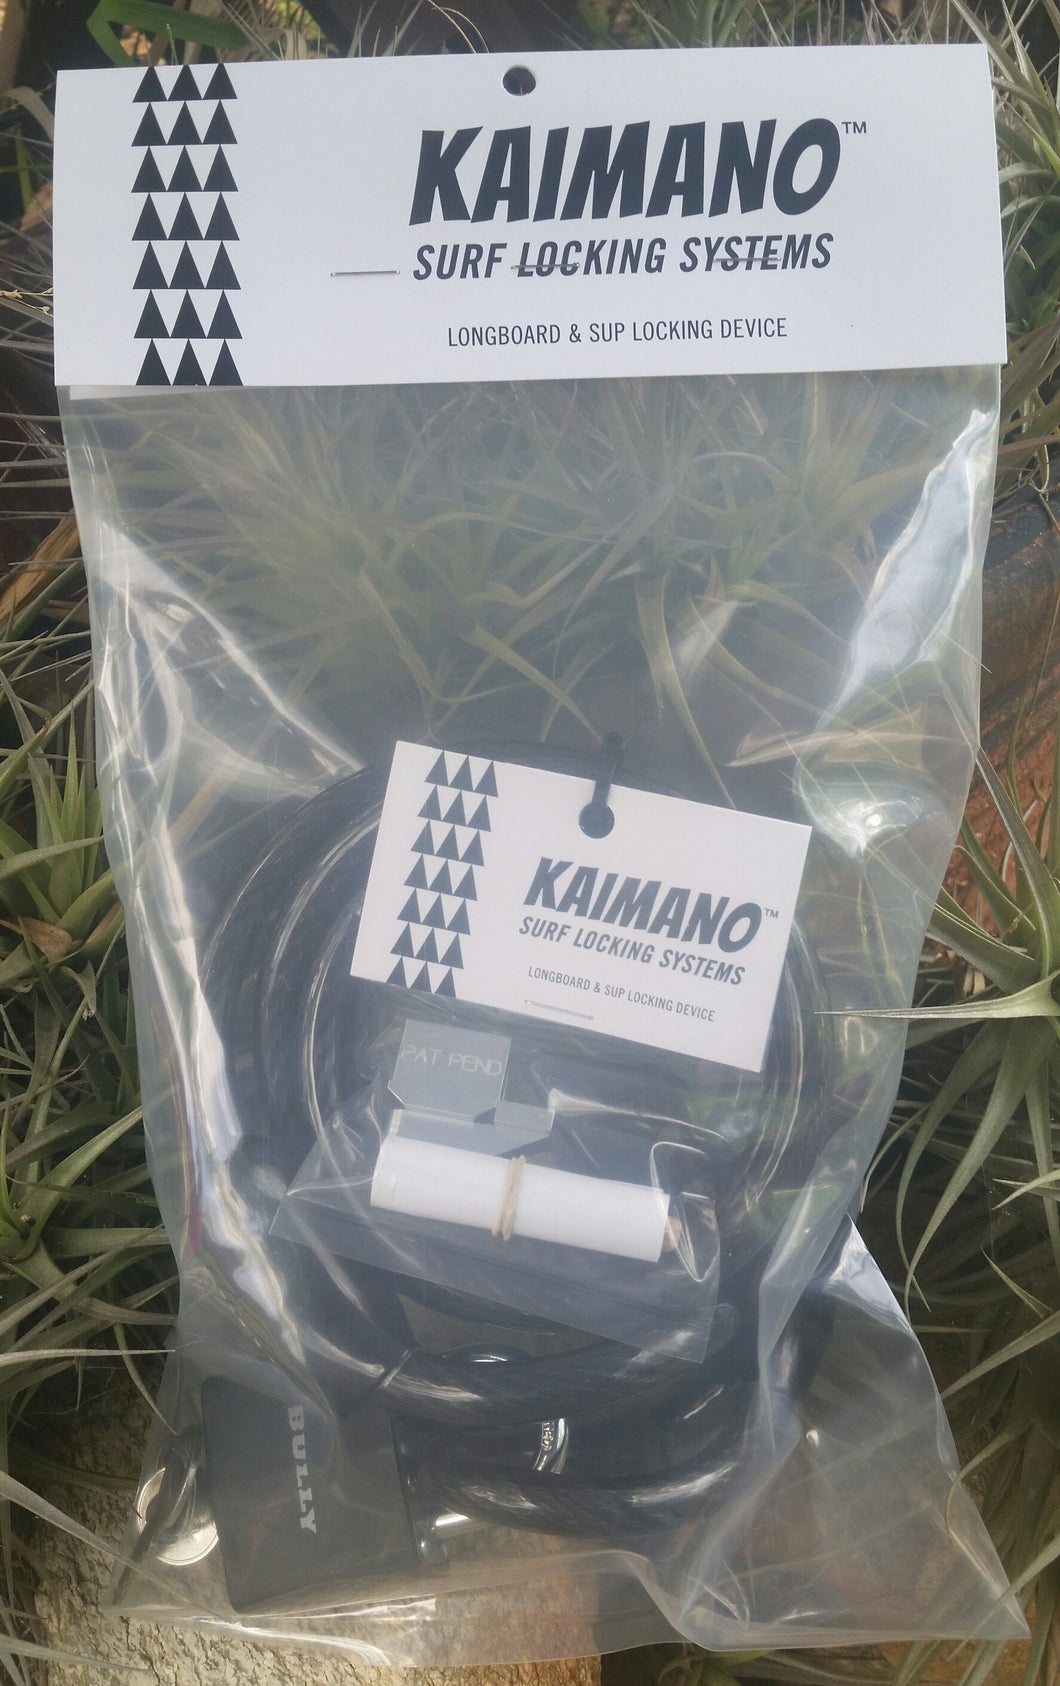 KAIMANO® Surf Locking Systems